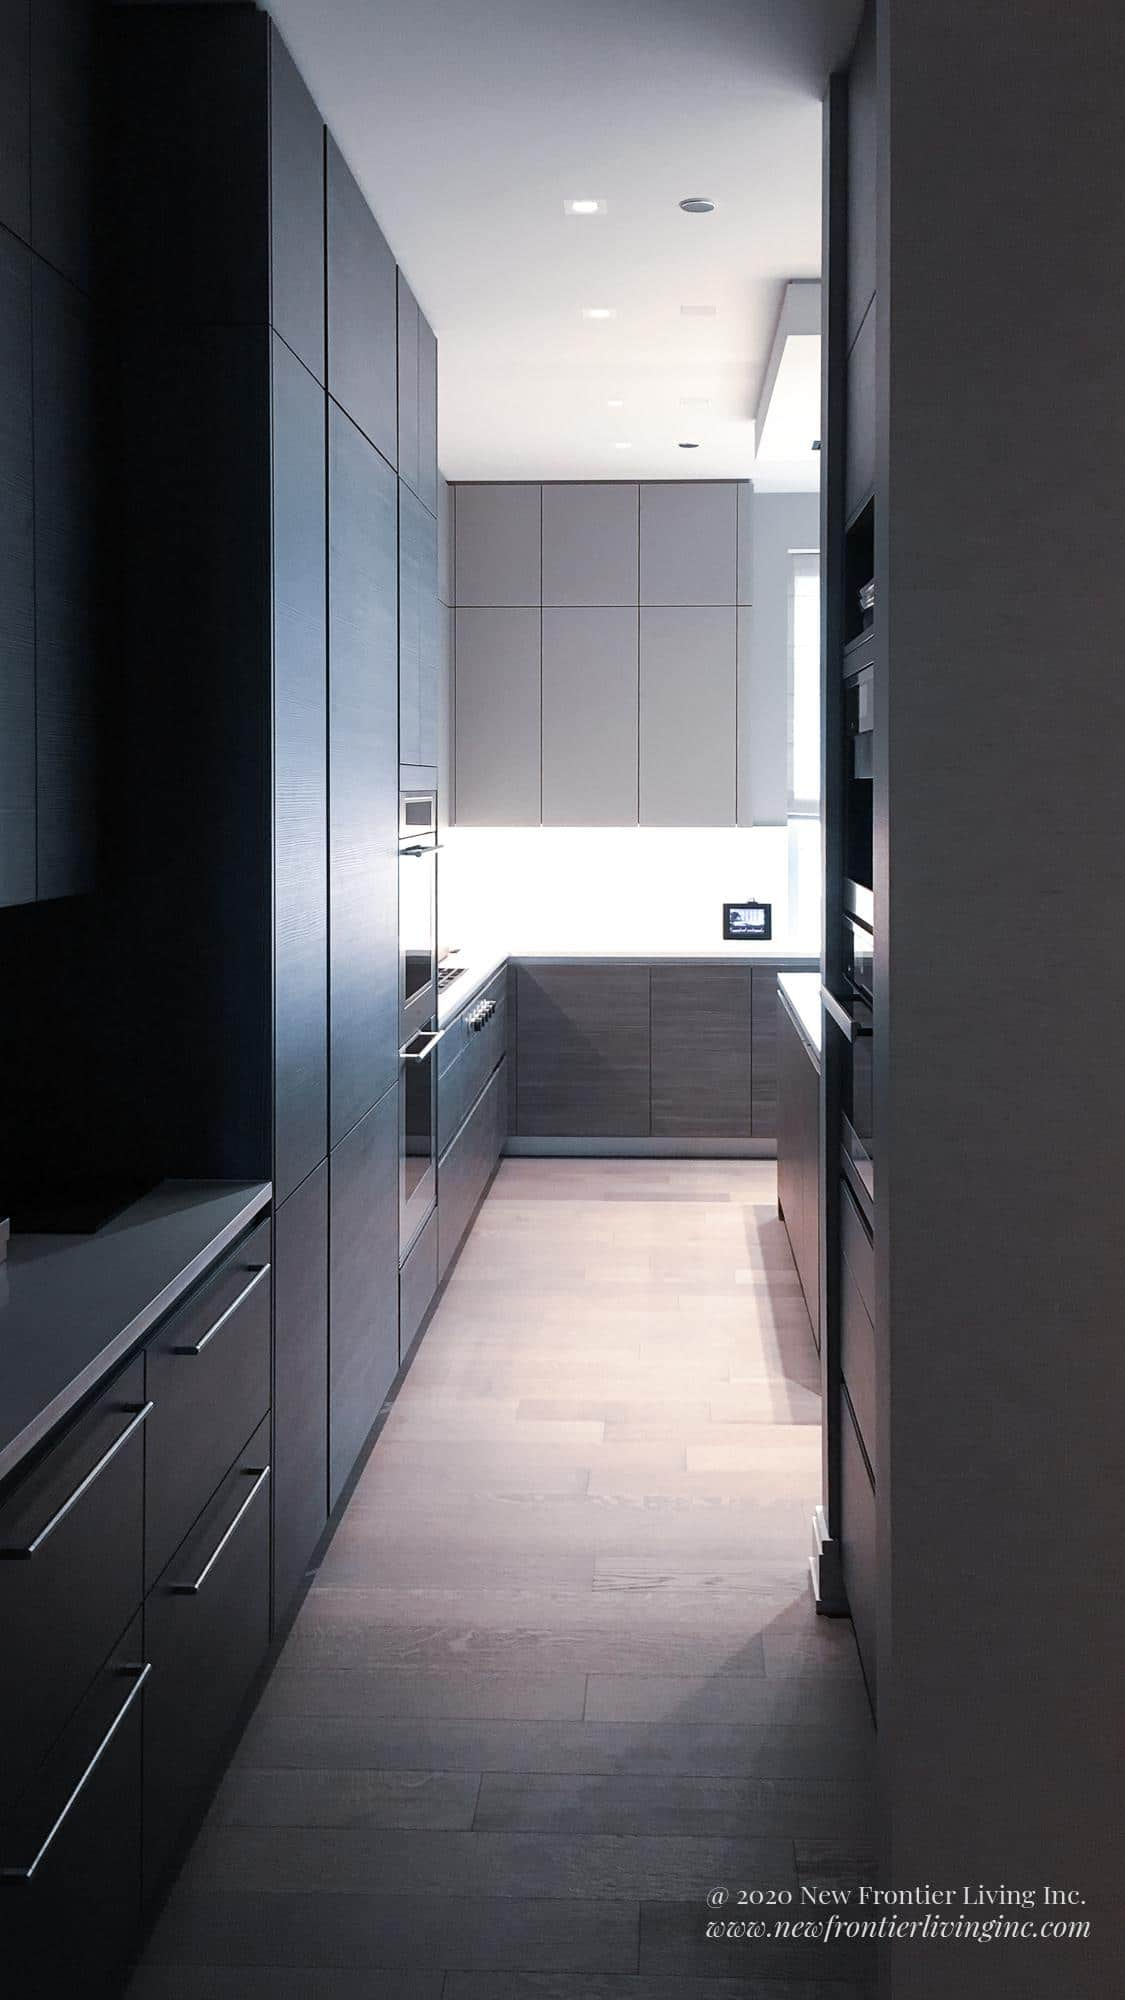 Black kitchen bottom cabinetry with and without handles with wooden floor